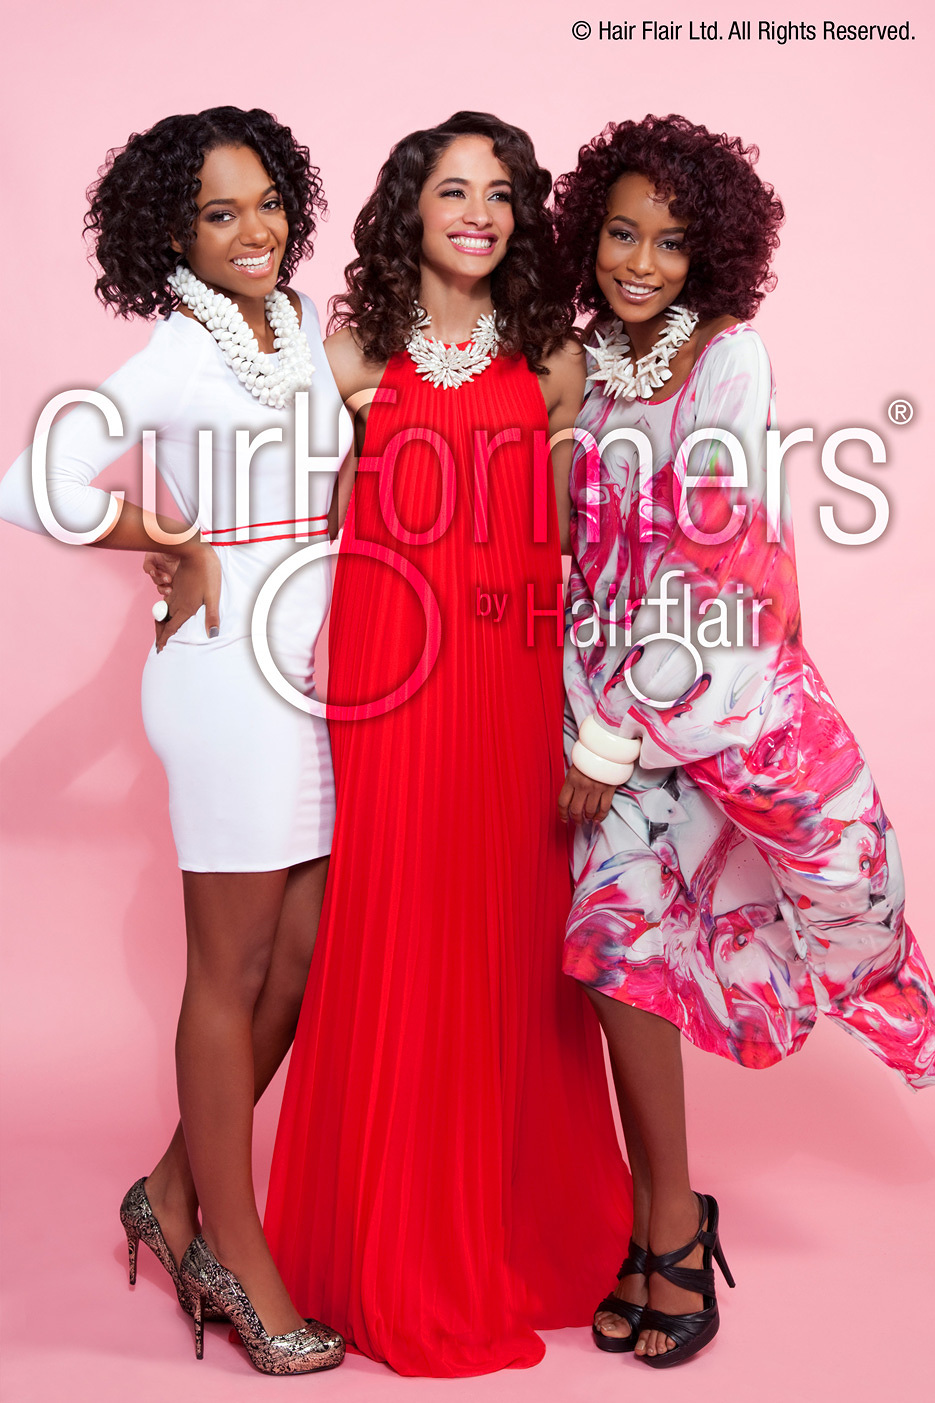 PageImage-530282-5161811-Curlformers_BH_Image08